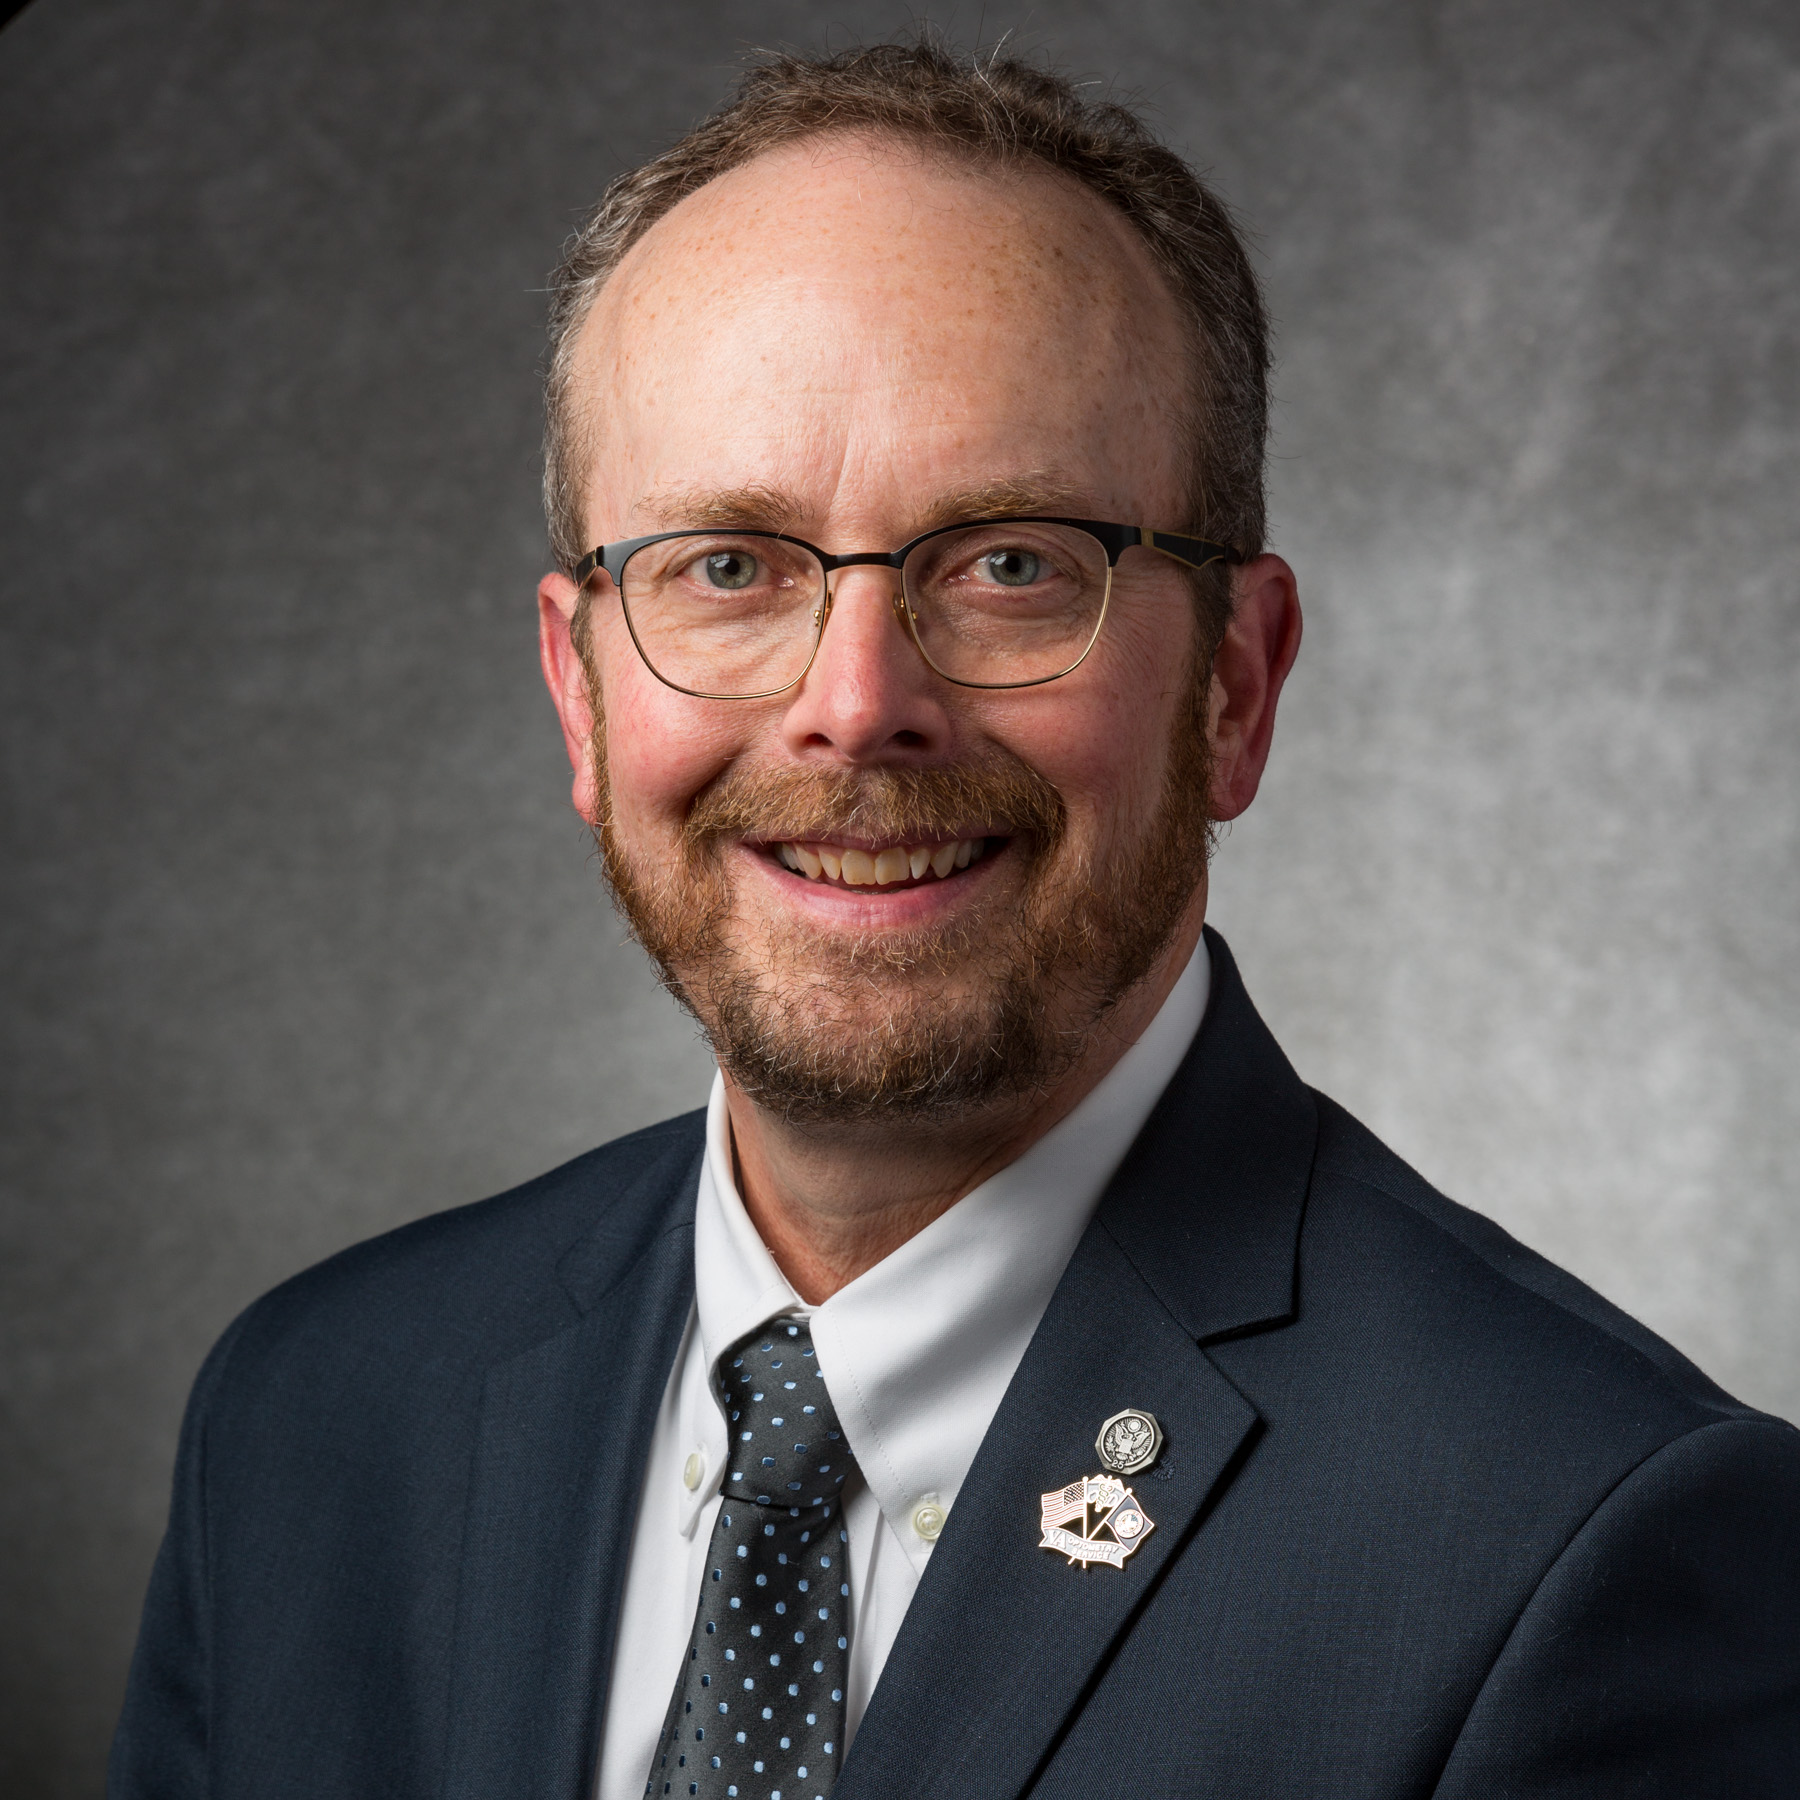 """Michael Brown is an optometrist who has practiced with the U.S. Department of Veterans Affairs for over 25 years and served as an adjunct clinical professor at the University of Alabama at Birmingham School of Optometry. His piece, """" Red Line Rising ,"""" appears in the the Spring 2018 Intima: A Journal of Narrative Medicine"""